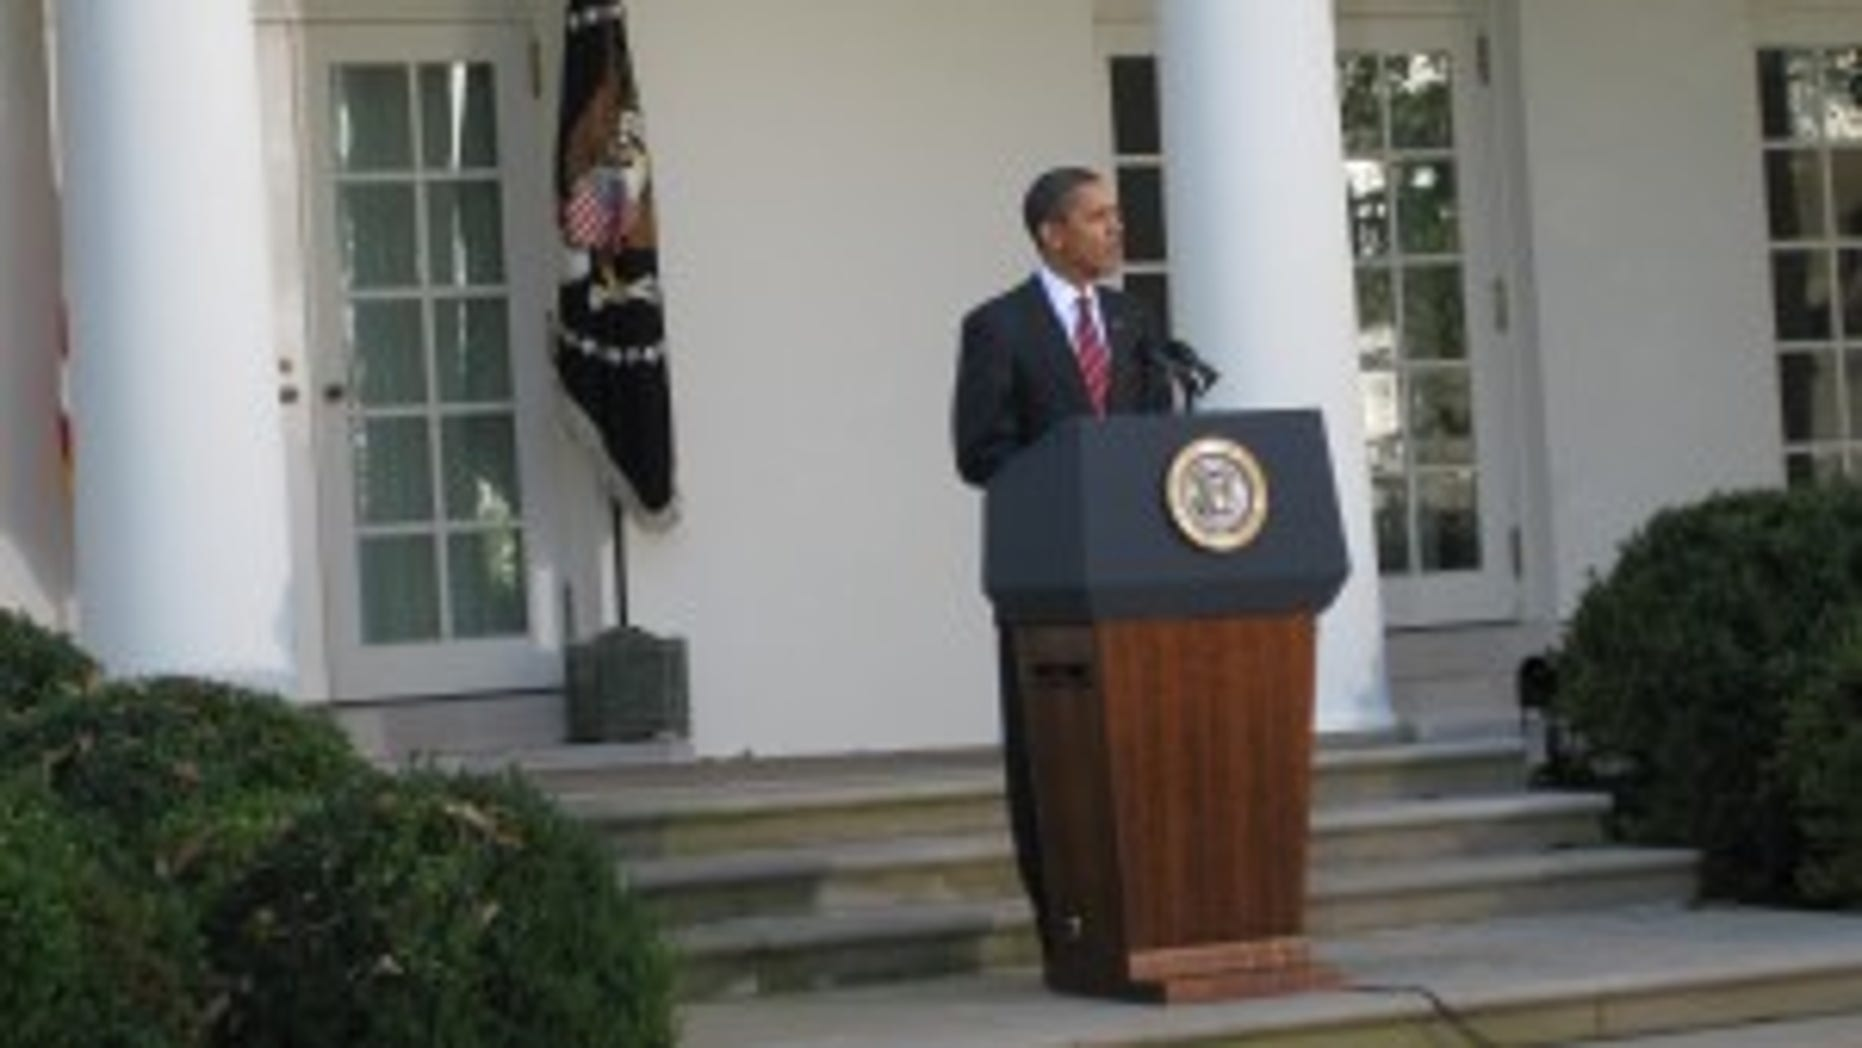 President Obama speaking in the Rose Garden (Photo by Eve Zibel)